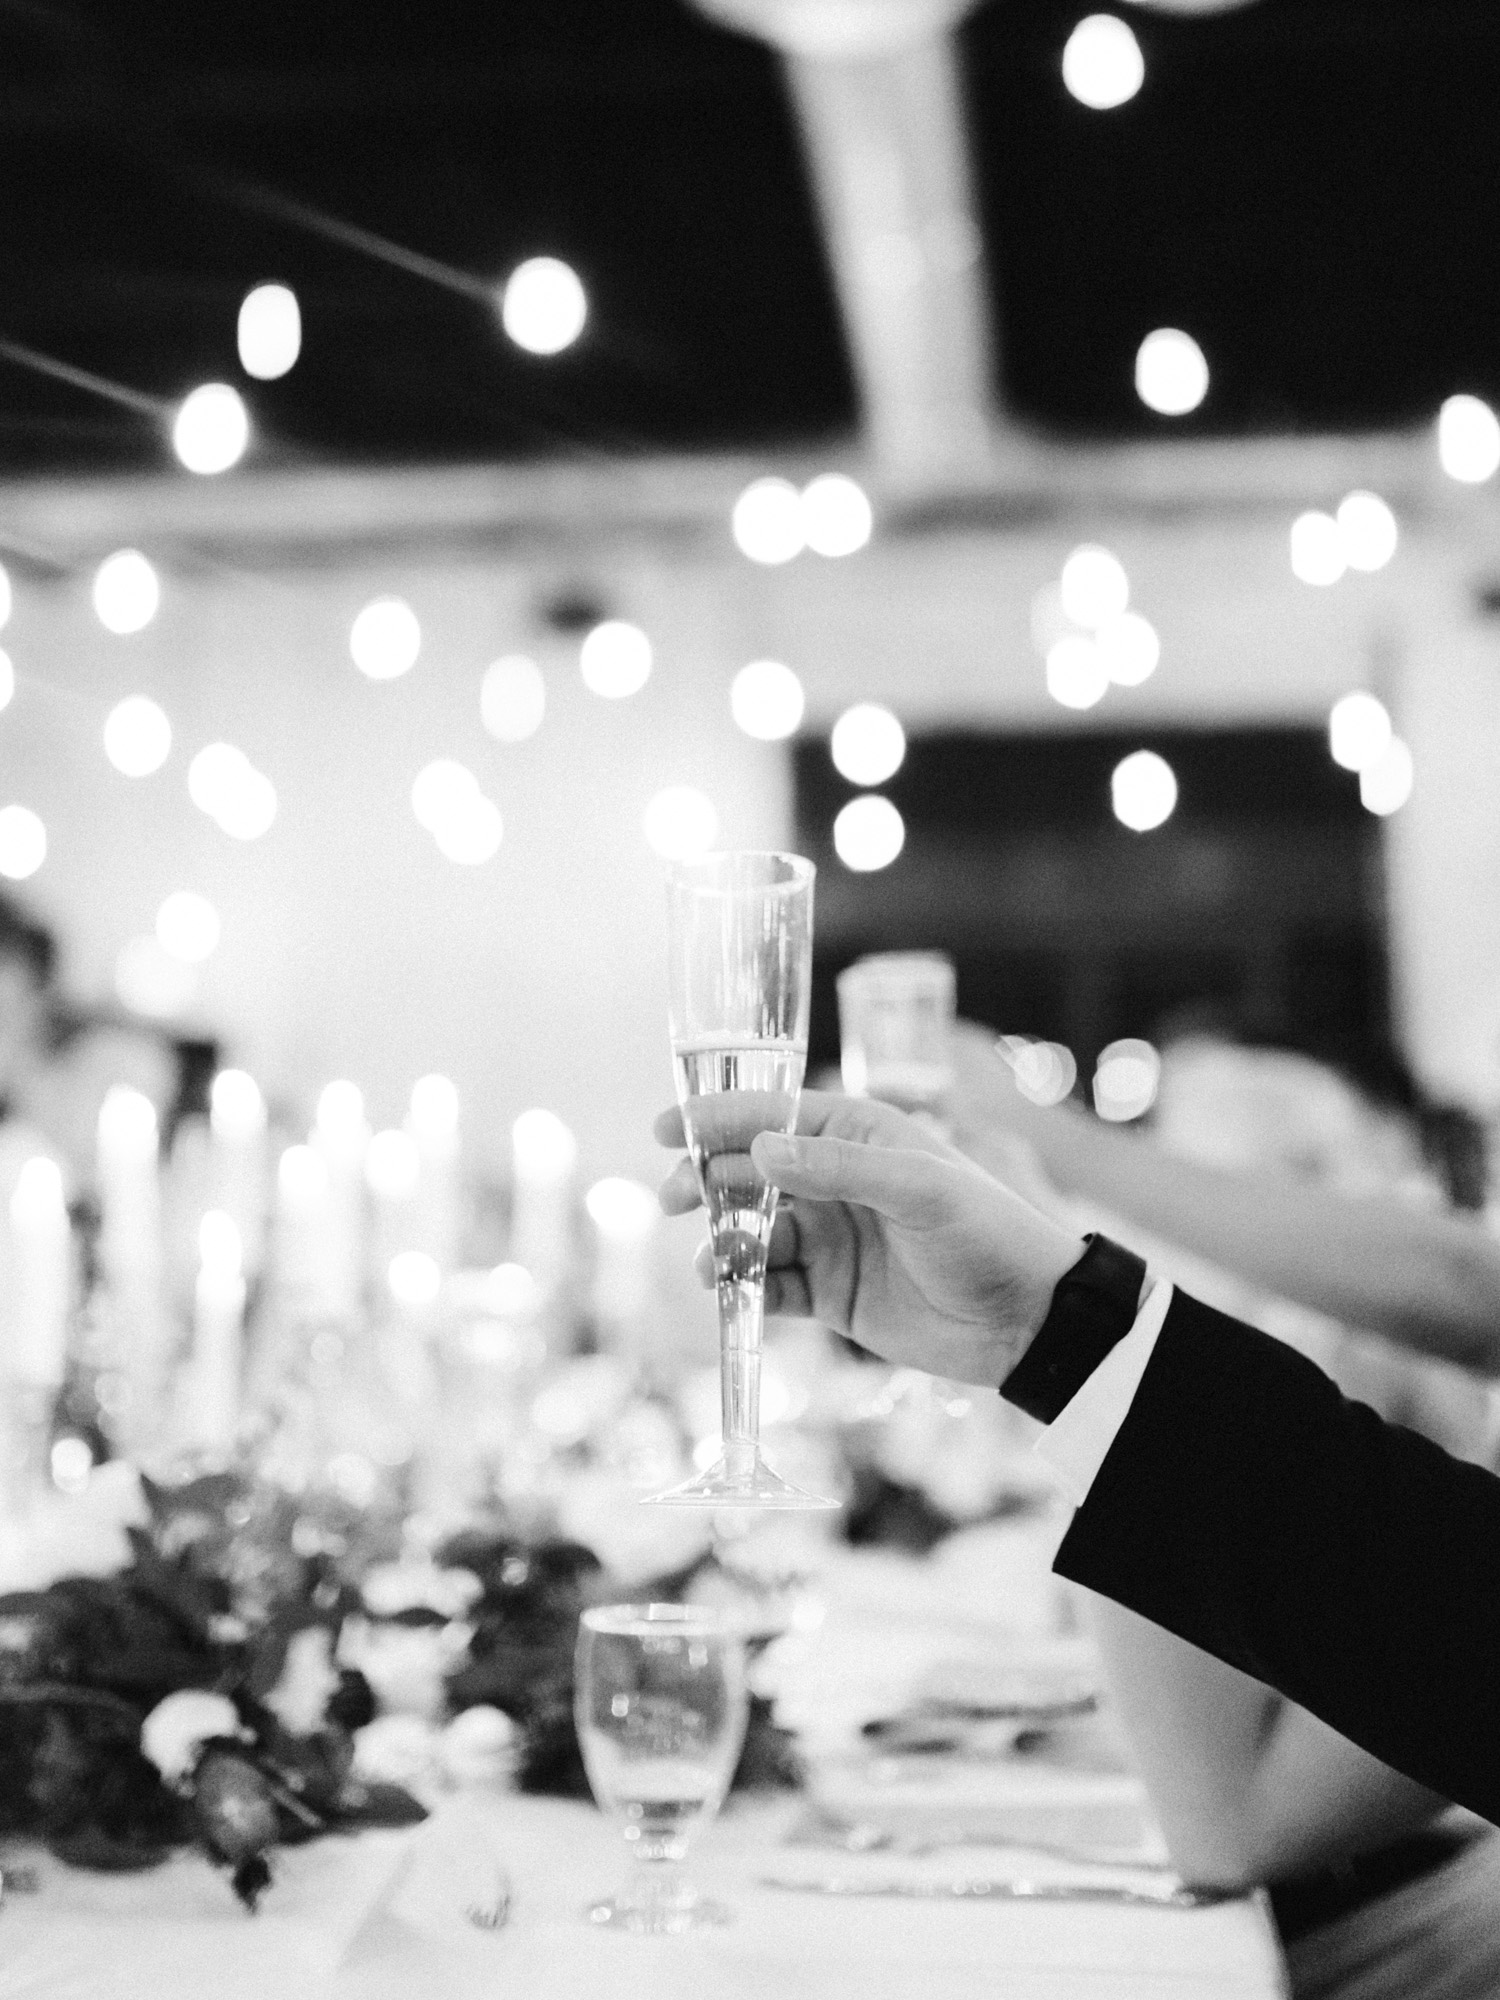 A groomsman raises a glass during the champagne toast at a wedding reception at The Brick in South Bend, Indiana